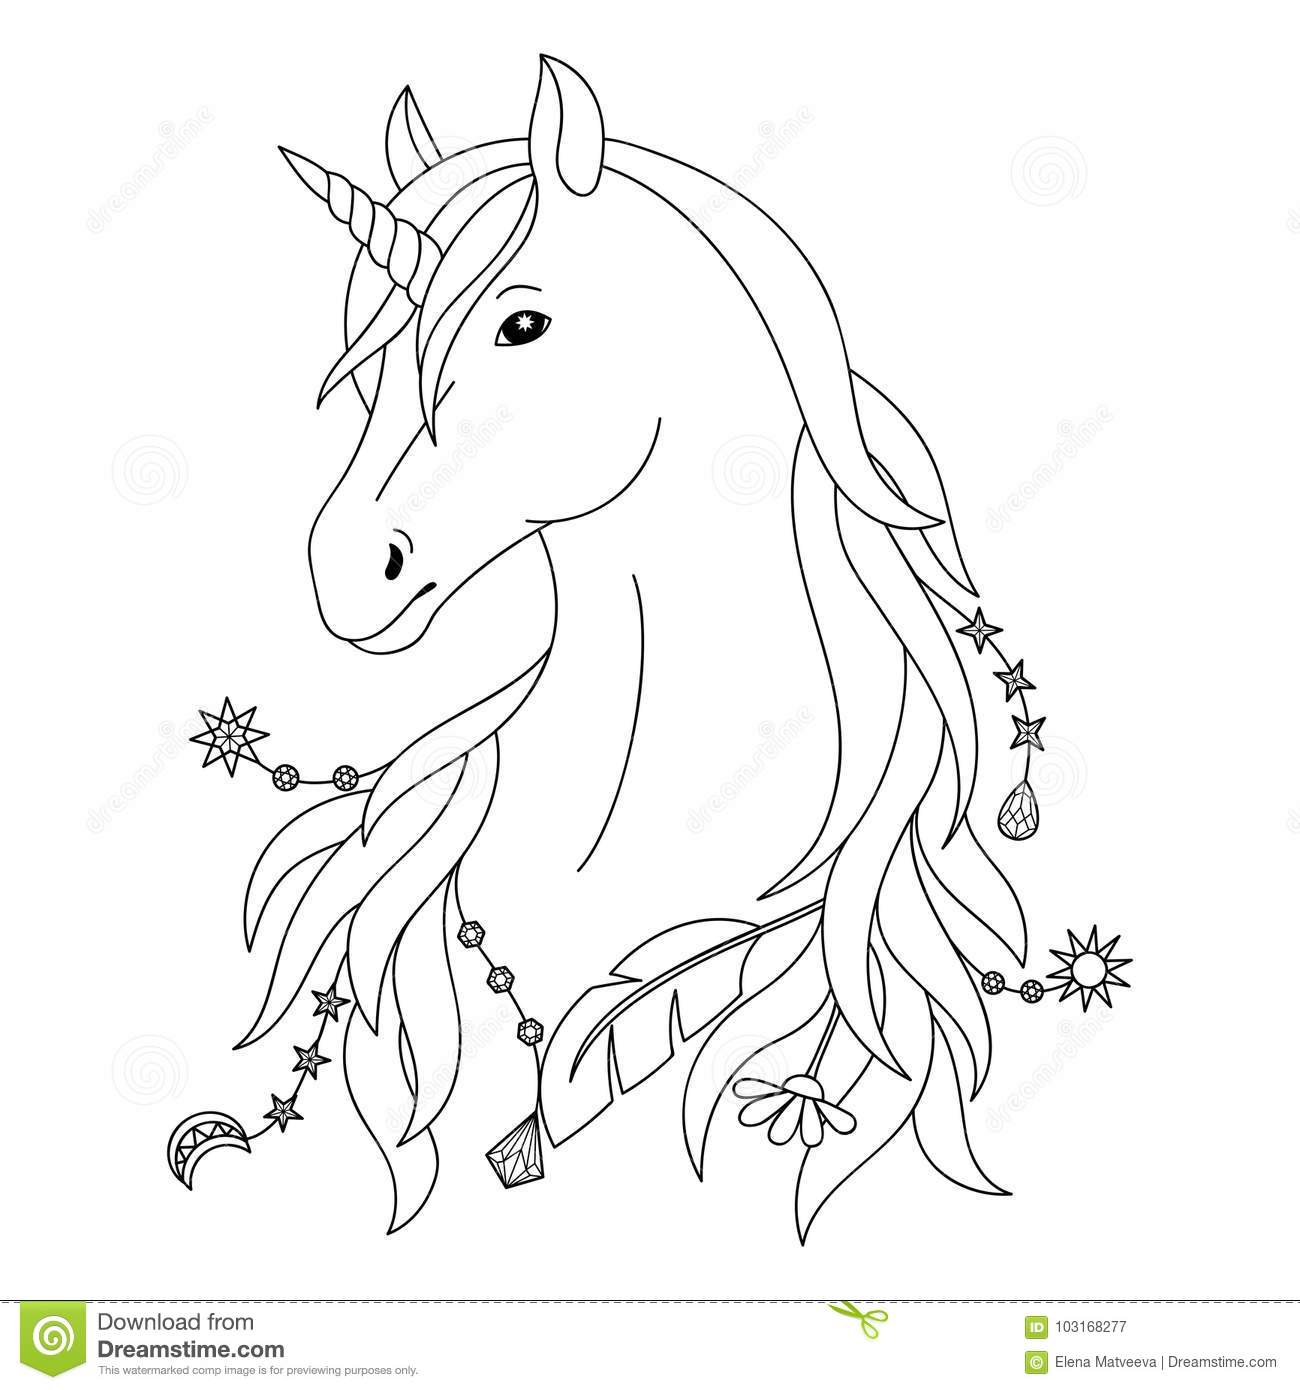 Tattoo Unicorn Stock Illustrations 2 235 Tattoo Unicorn Stock Illustrations Vectors Clipart Dreamstime Check out our tattoo unicorn selection for the very best in unique or custom, handmade pieces from our tattooing shops. https www dreamstime com unicorn tattoo symbol black white coloring page image103168277